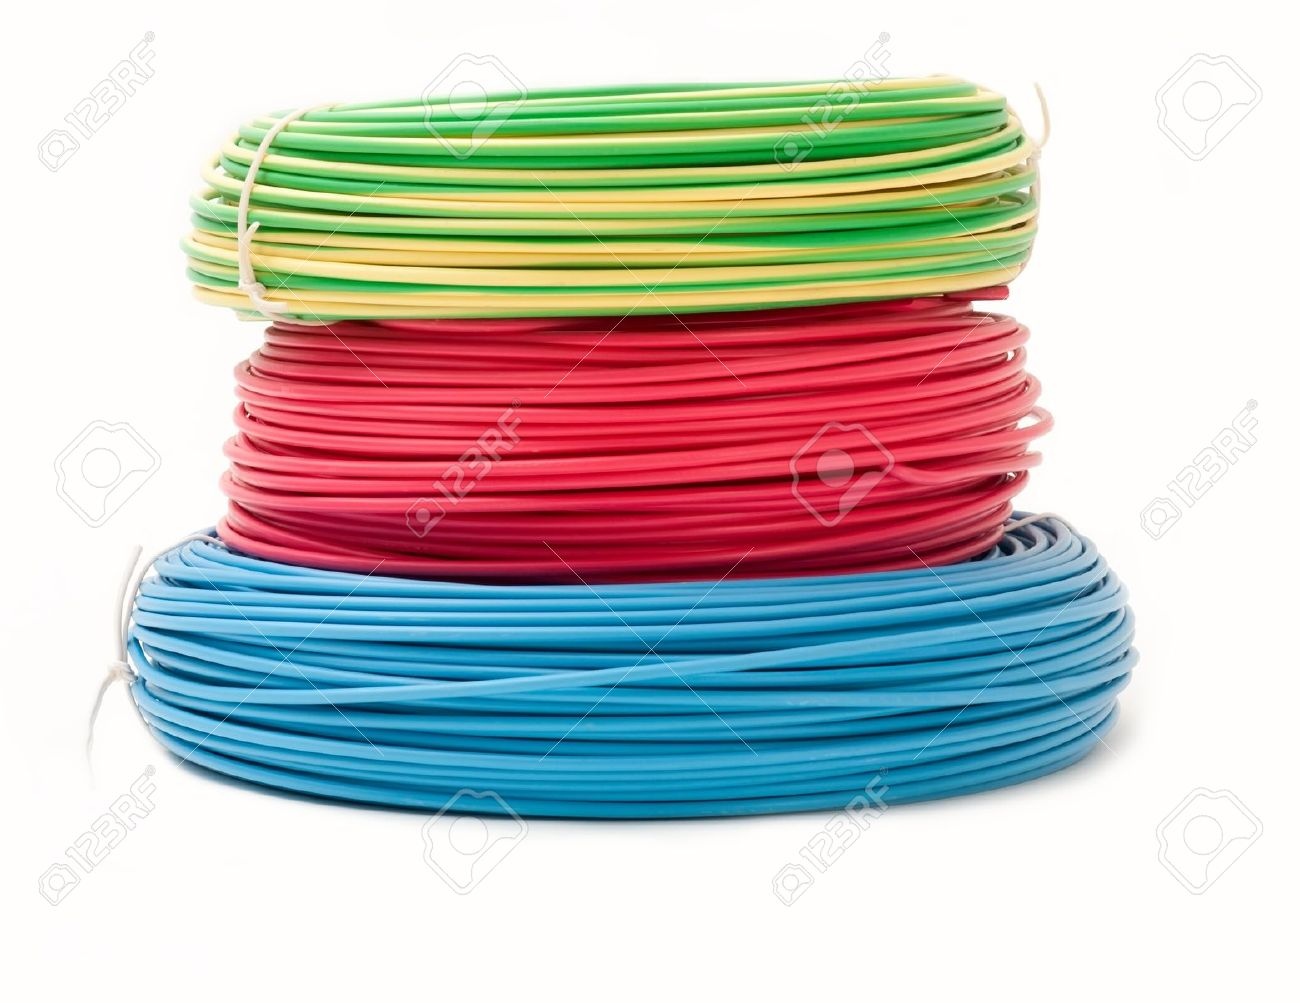 Roll Of Cable Wire - Roslonek.net